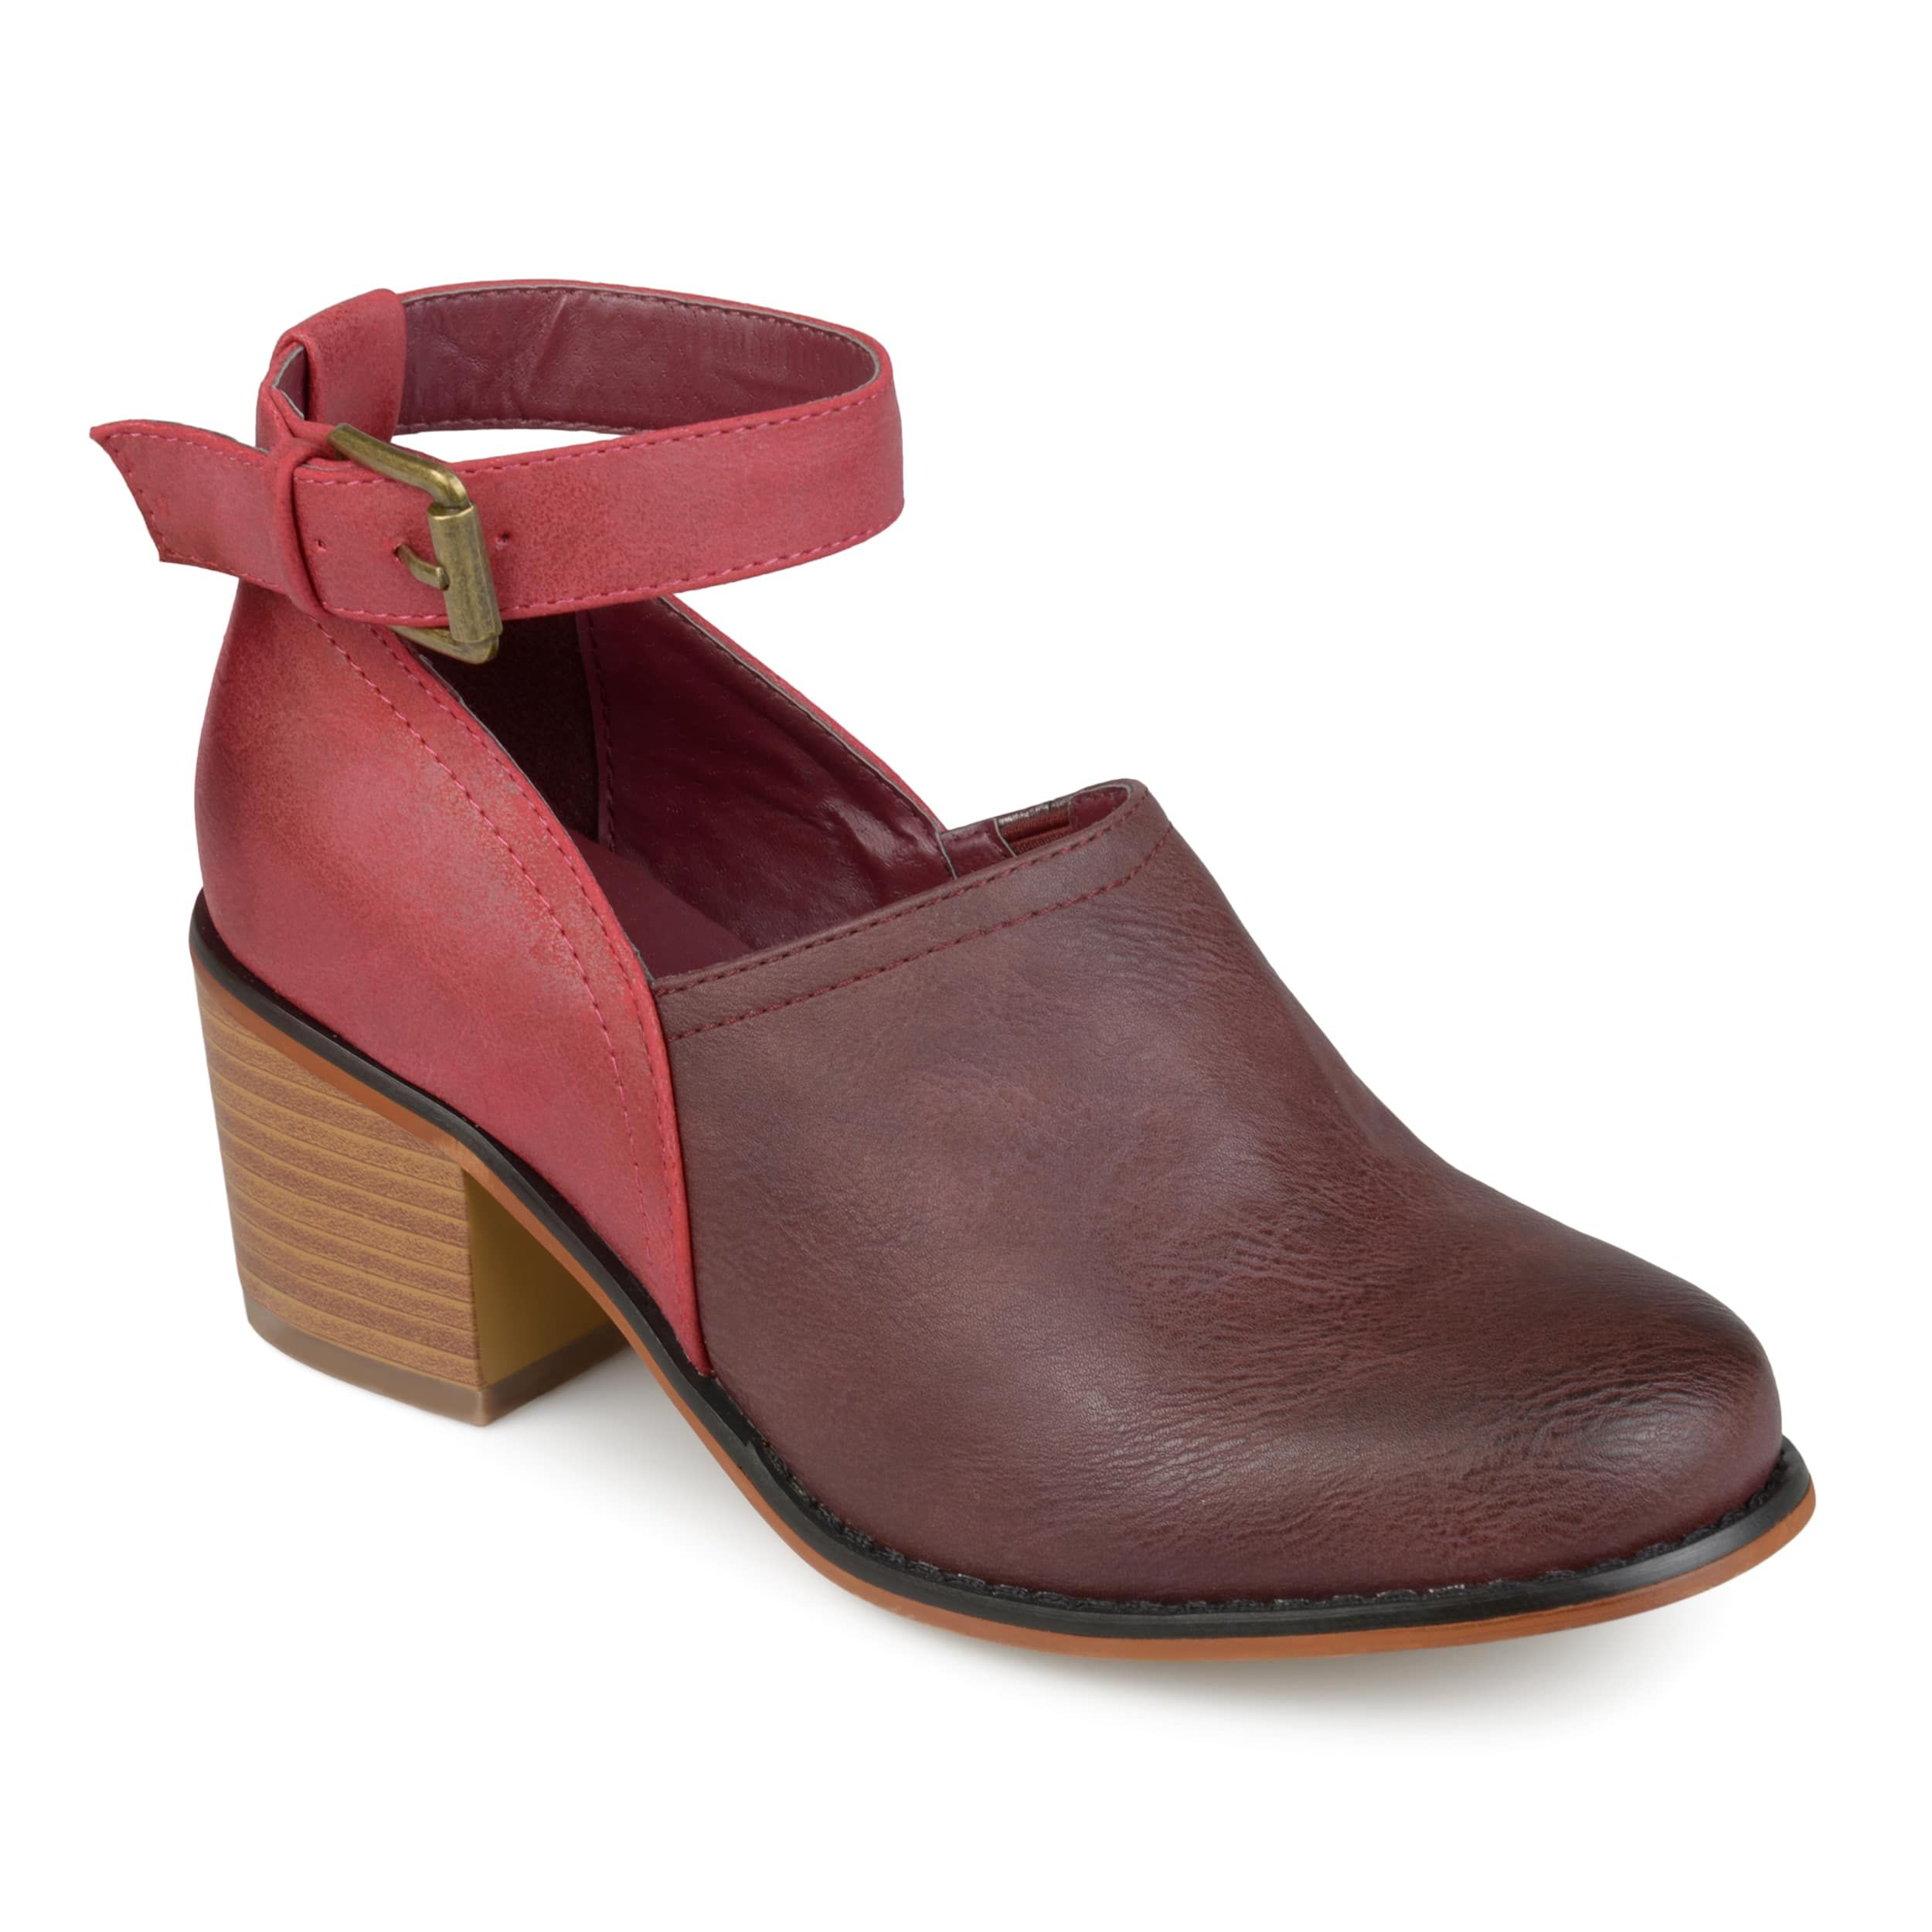 Womens Ankle Strap Stacked Heel Clogs